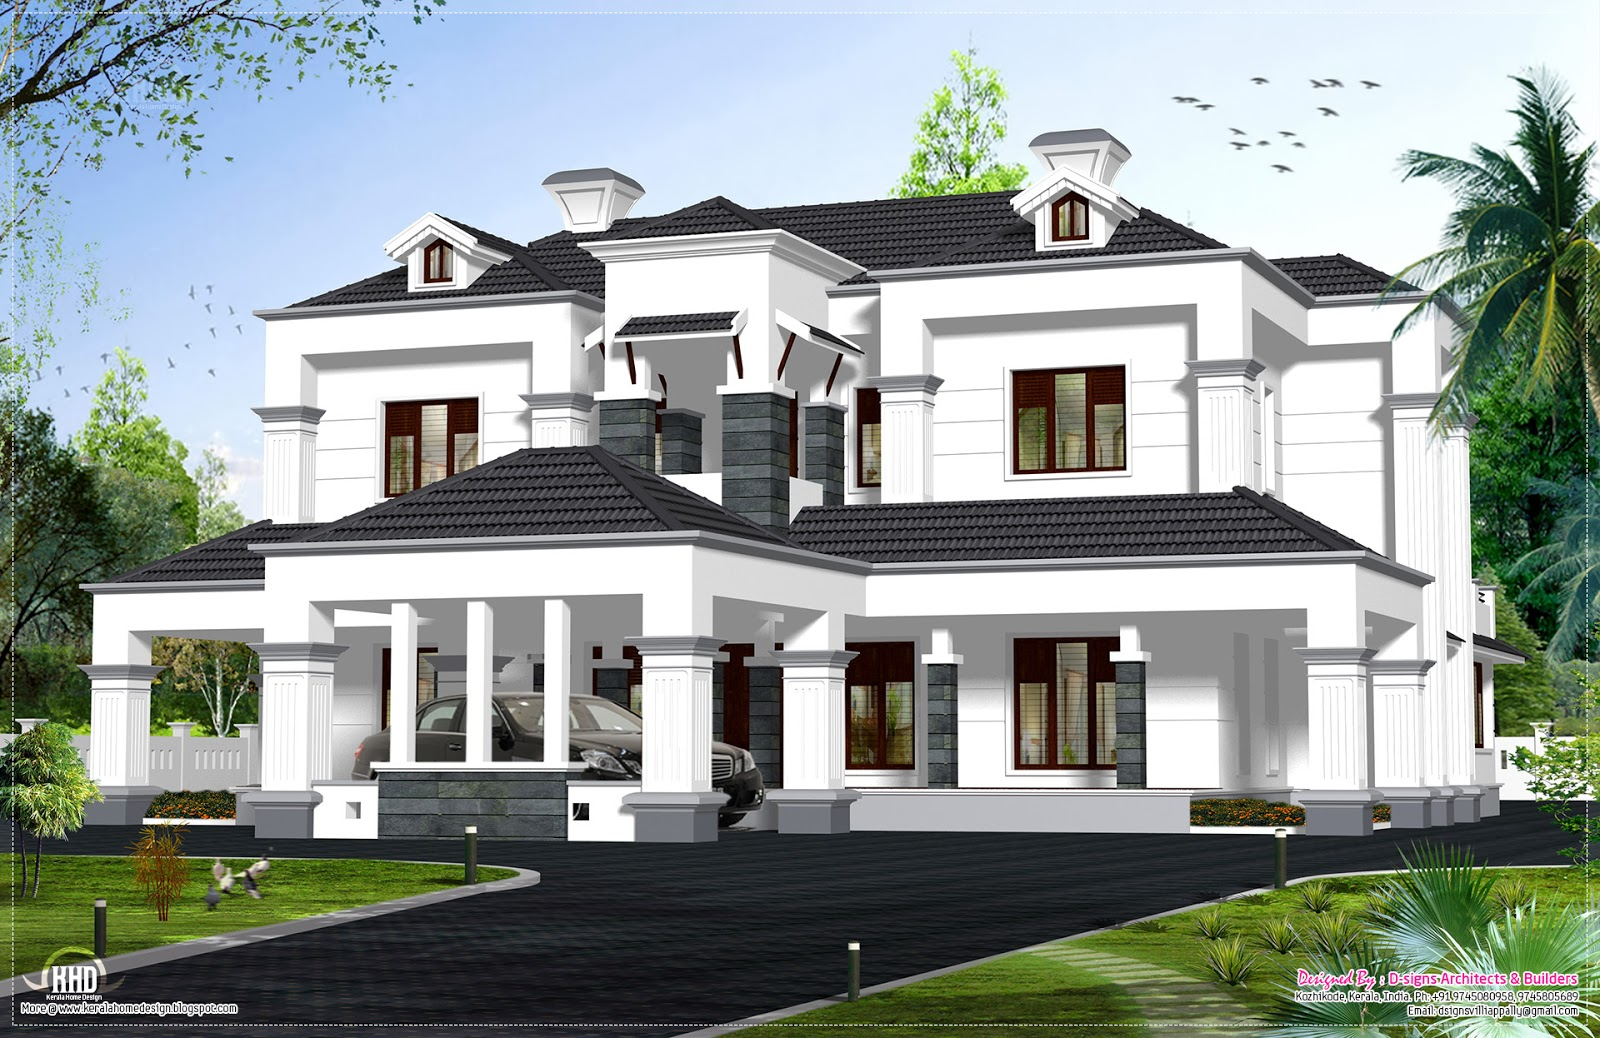 Victorian model house exterior kerala home design and for Modern model homes